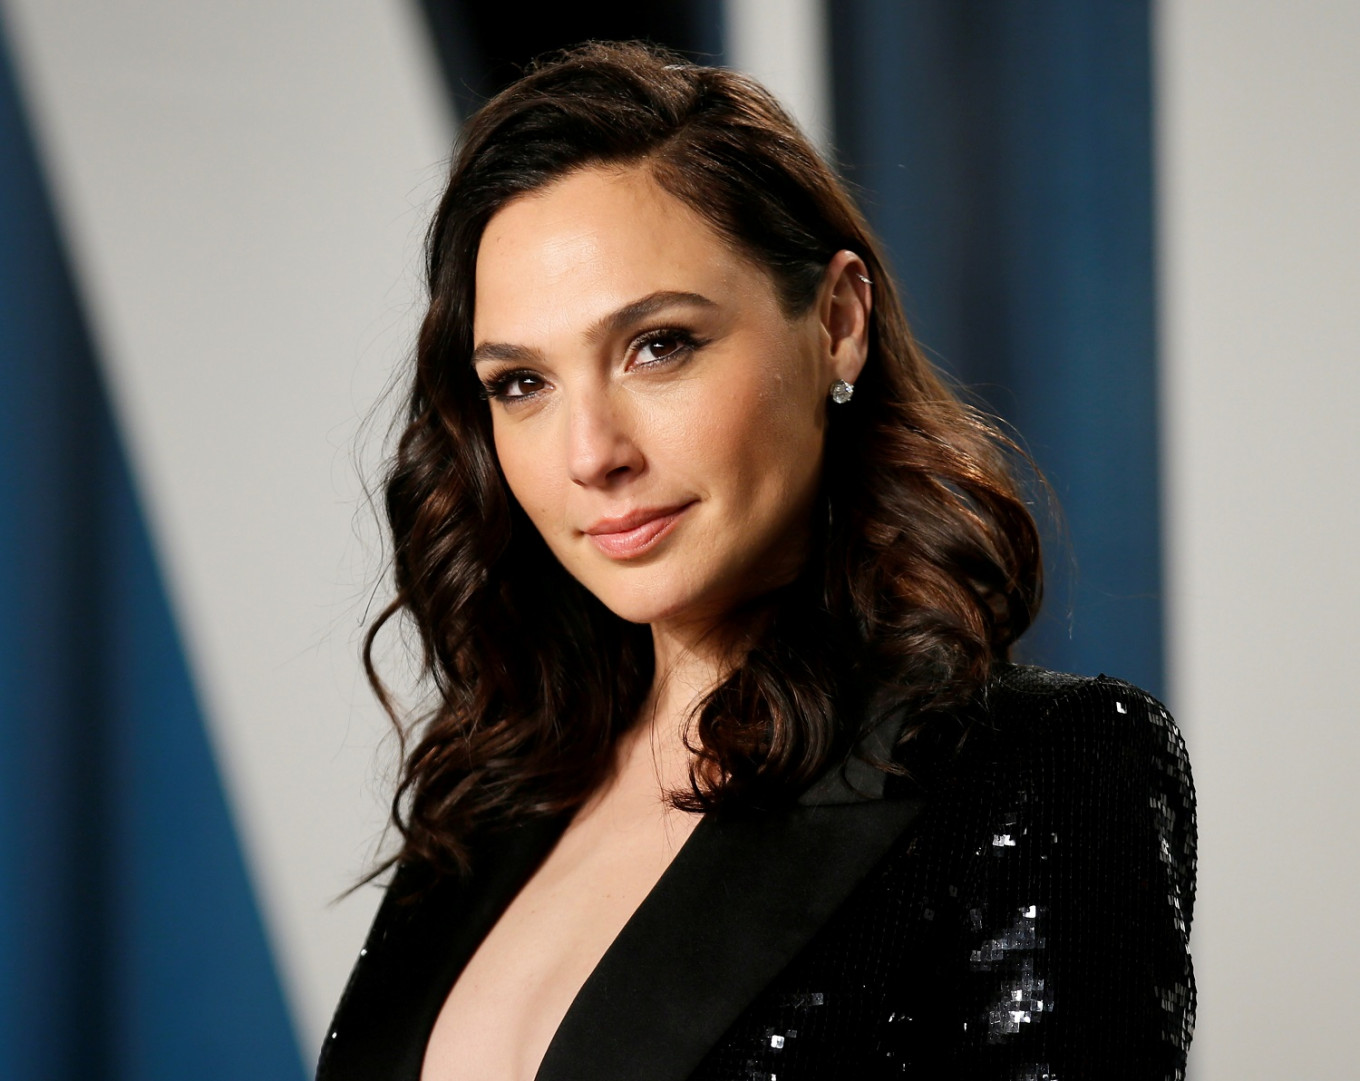 Gal Gadot talks 'muting' criticism of military past and docuseries about impactful women